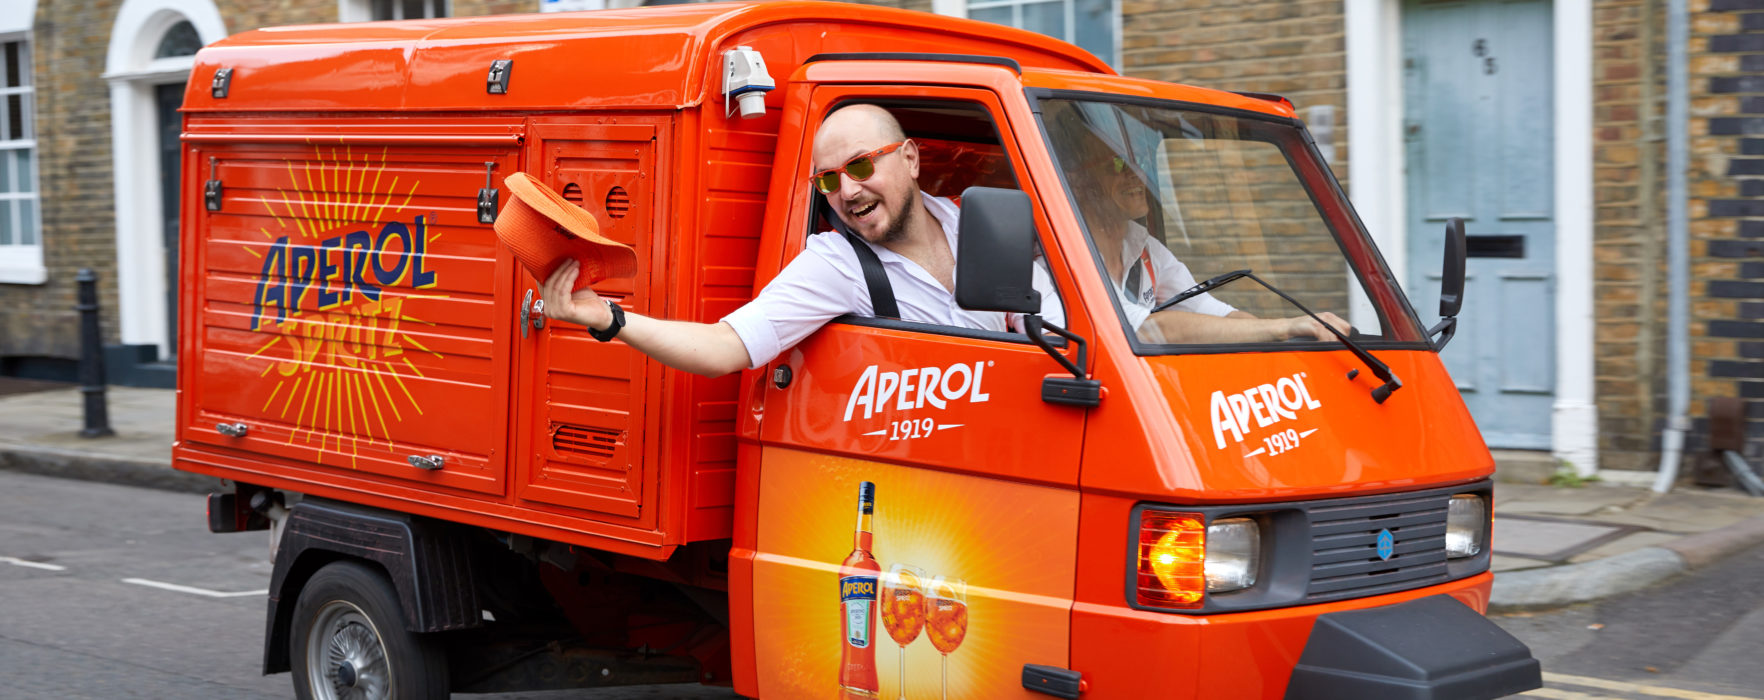 An Aperol Spritz delivery service is coming to Manchester!